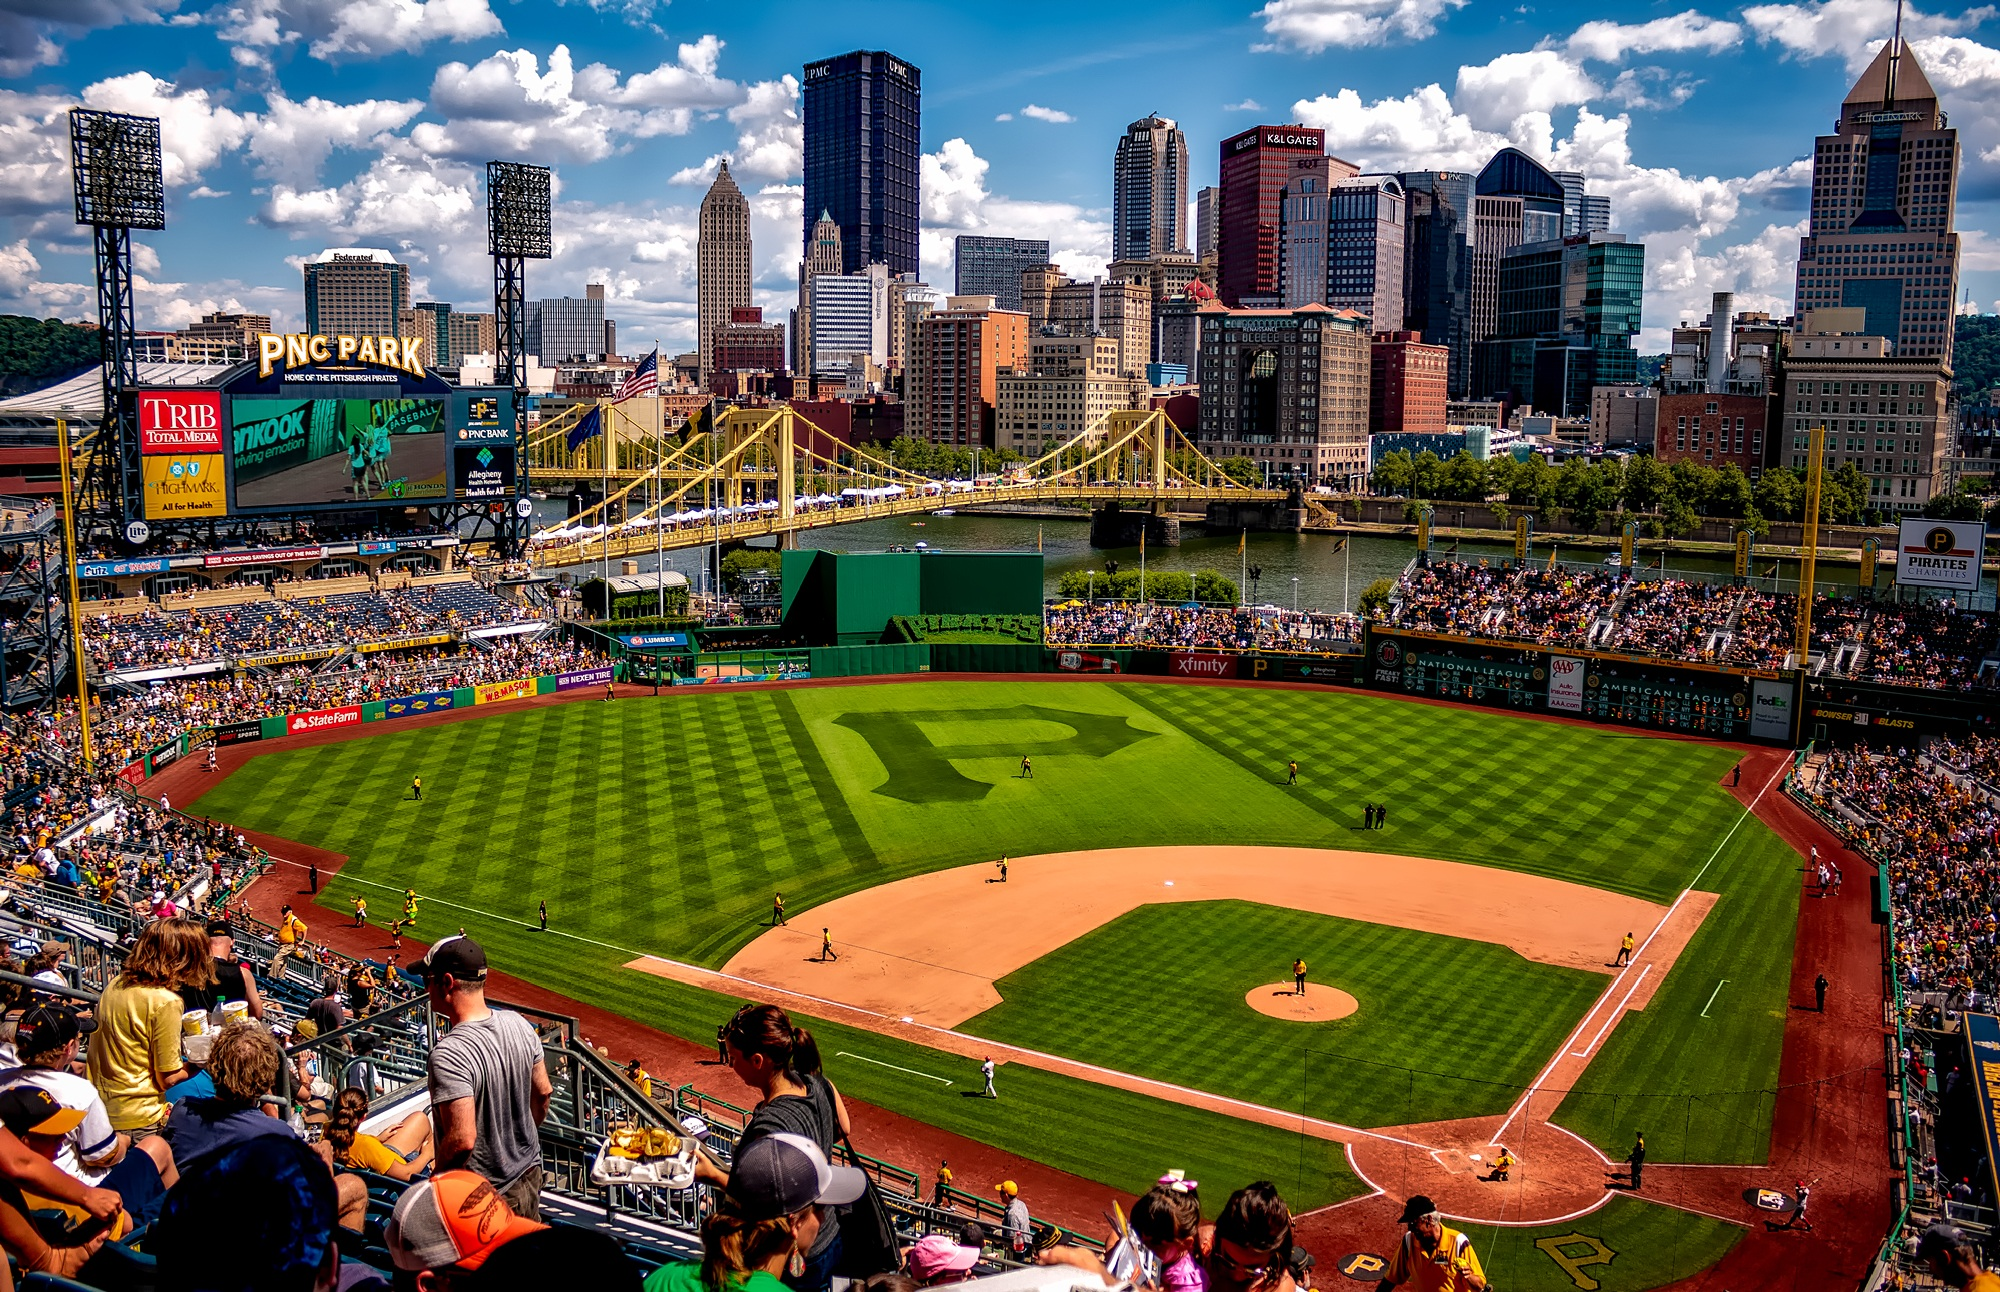 https://static.pexels.com/photos/163254/pnc-park-pittsburgh-pennsylvania-city-163254.jpeg